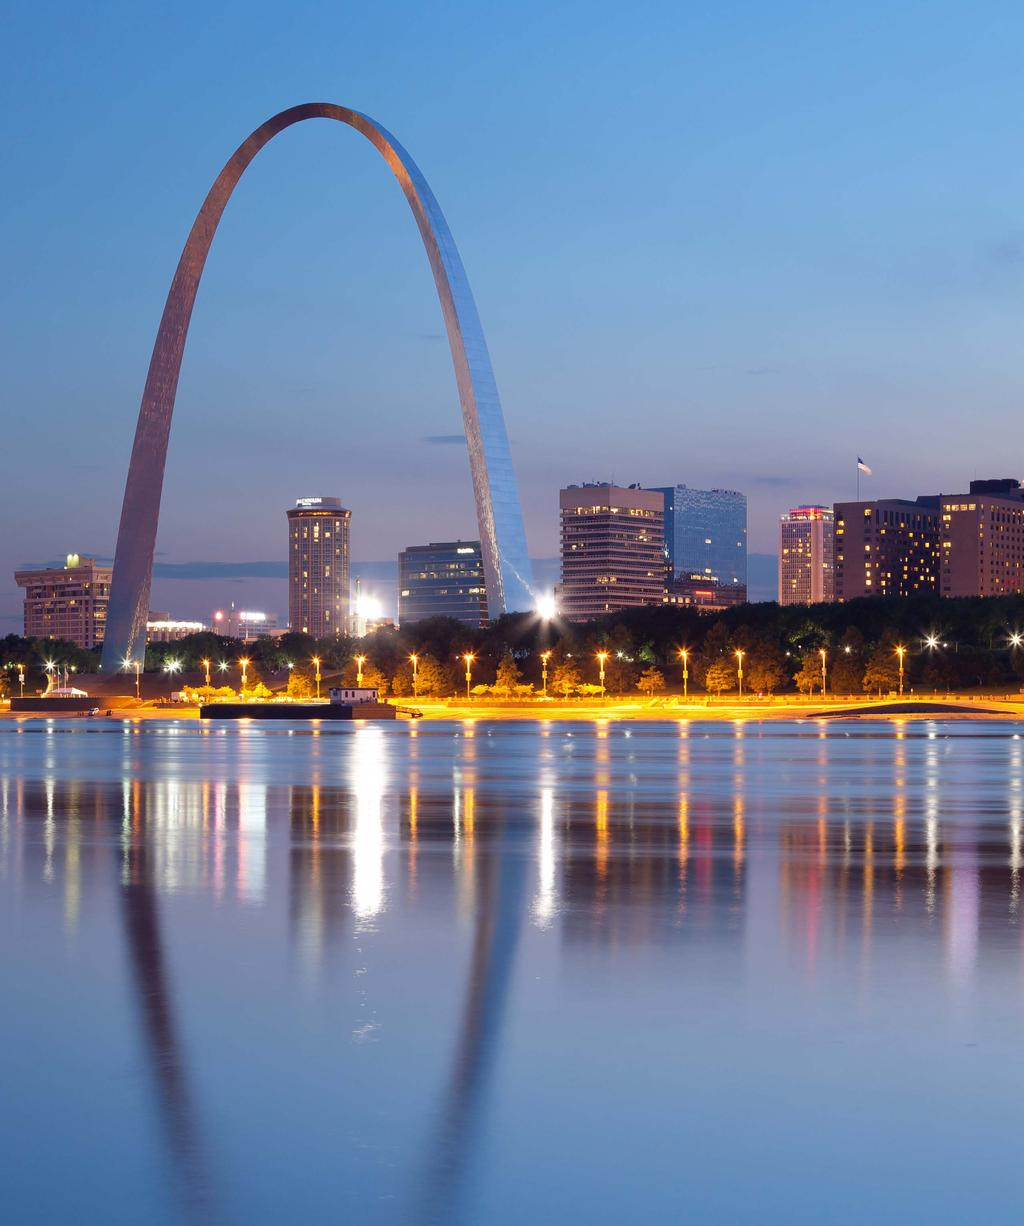 ST. LOUIS, MISSOURI JULY 21 - JULY 25, 2018 DEAR FRIENDS, I am honored to serve as your Chair for the 2017-2018 term, and I look forward to hosting the 72 nd Annual Meeting of the Southern